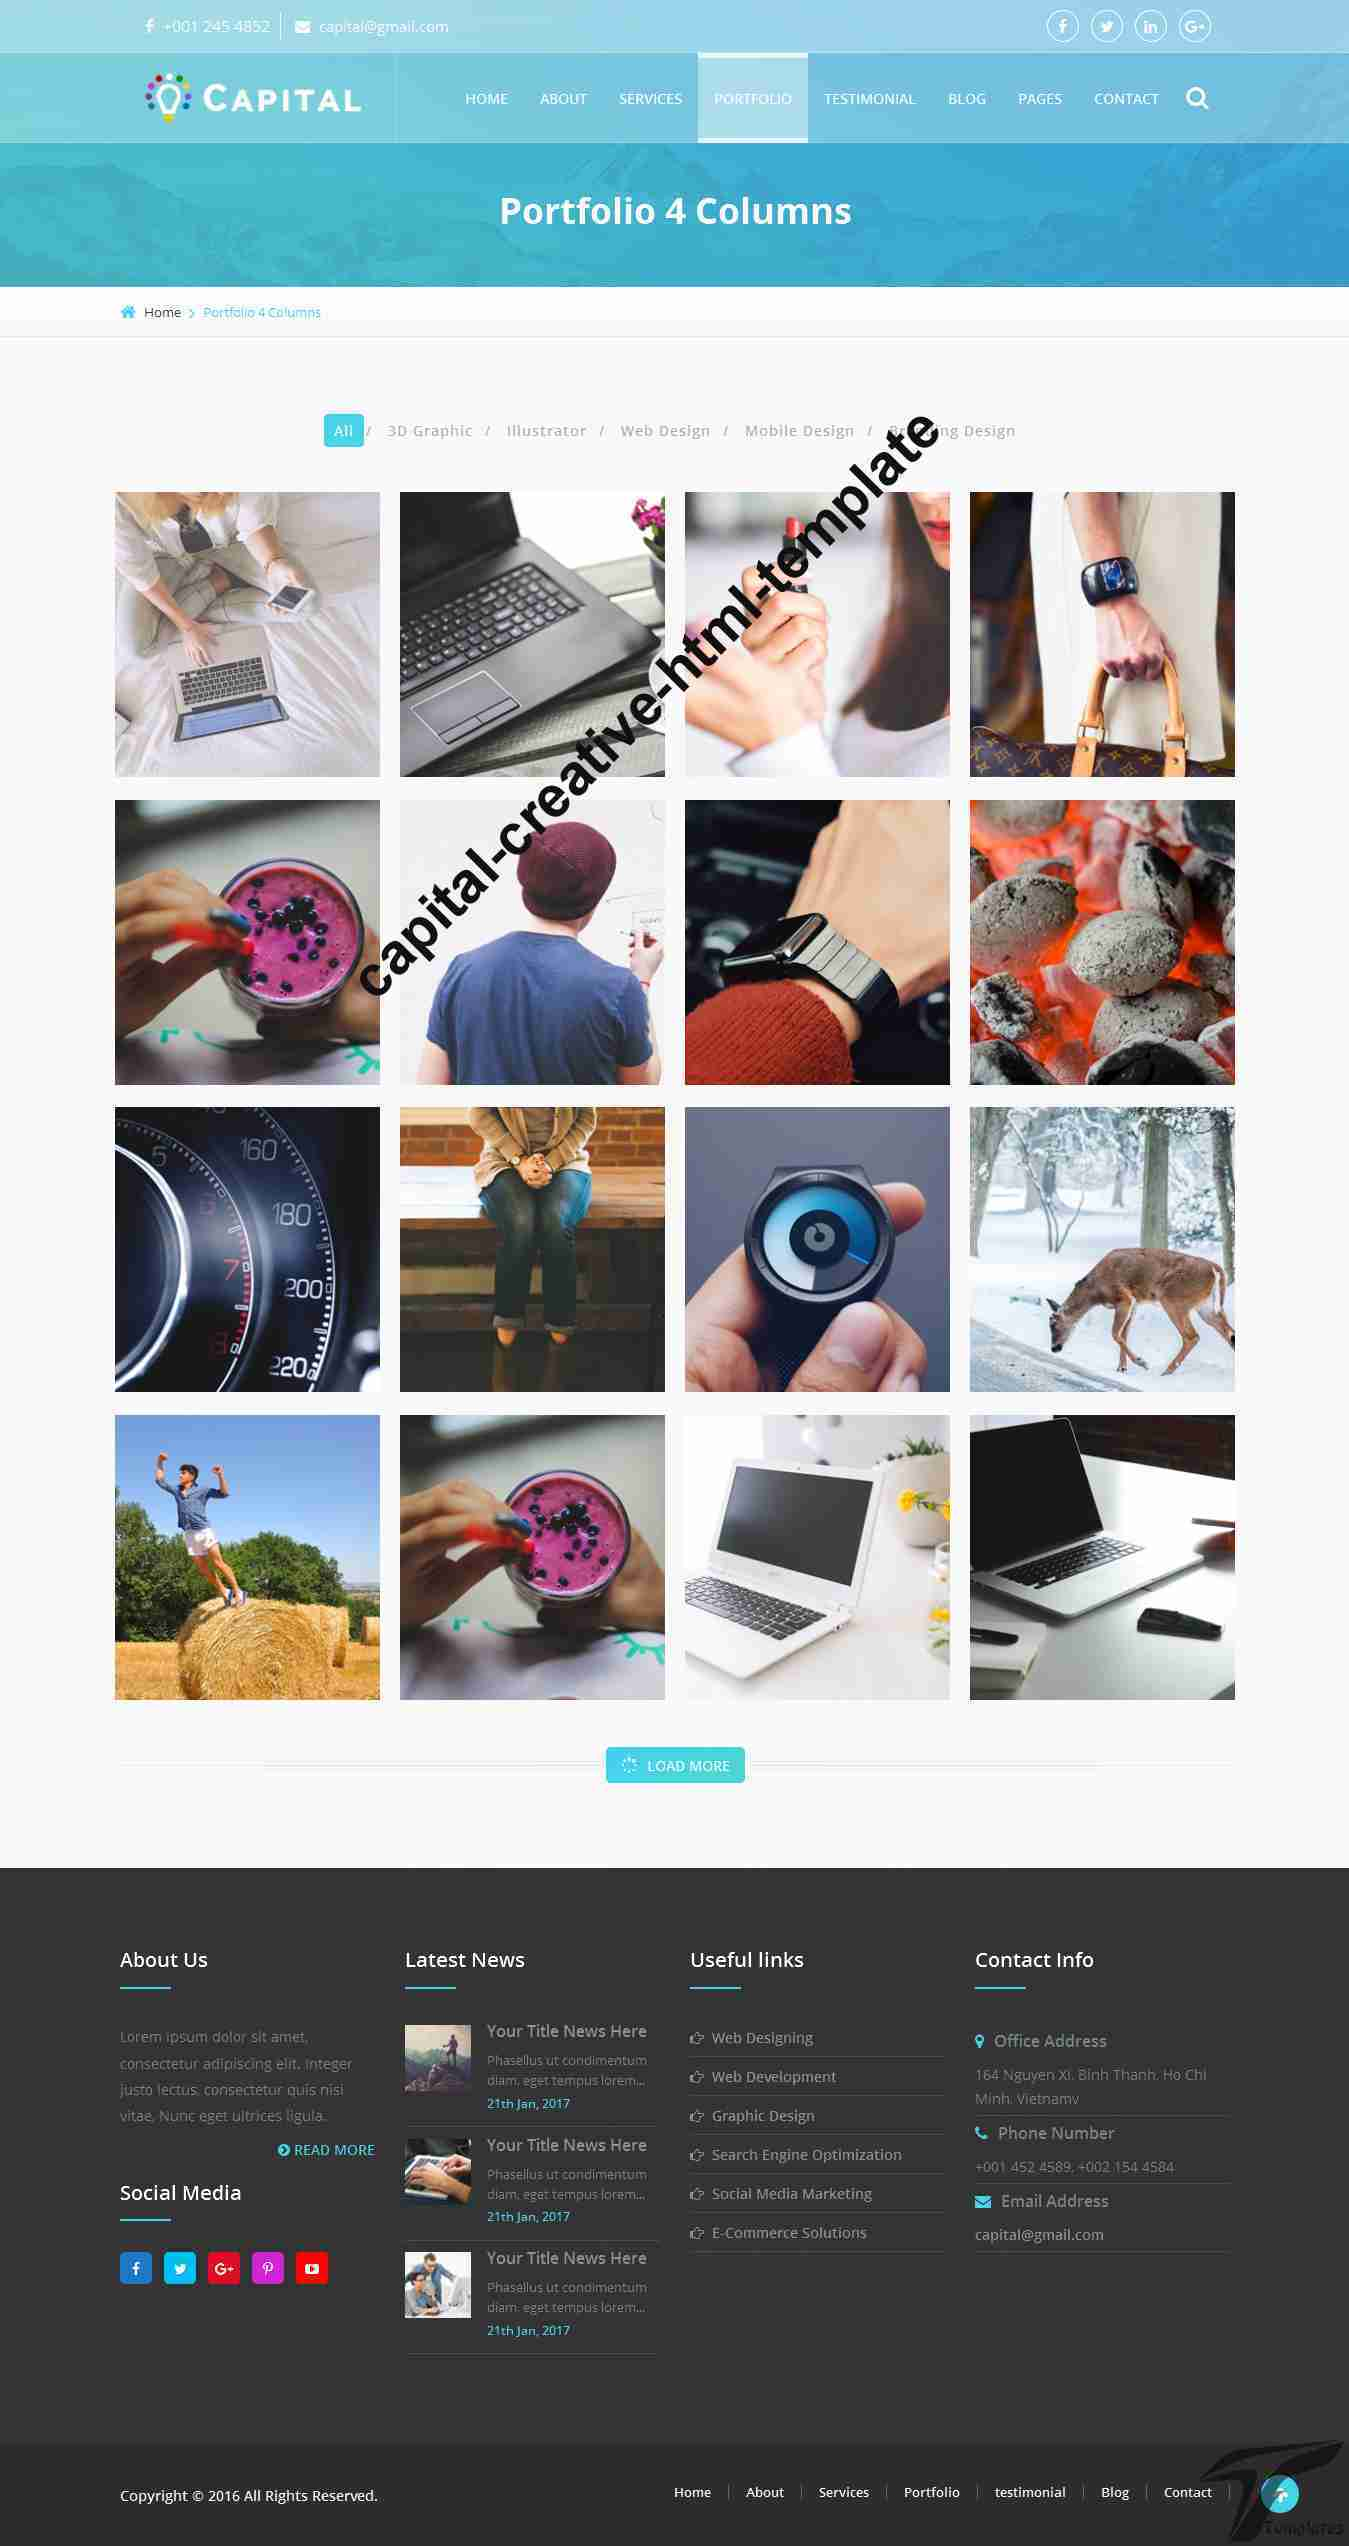 https://images.besthemes.com/images/h1_capital-creative-html-template7-_-205260579/Theme-s20s-Preview/04_Portfolio-4-Columns.png